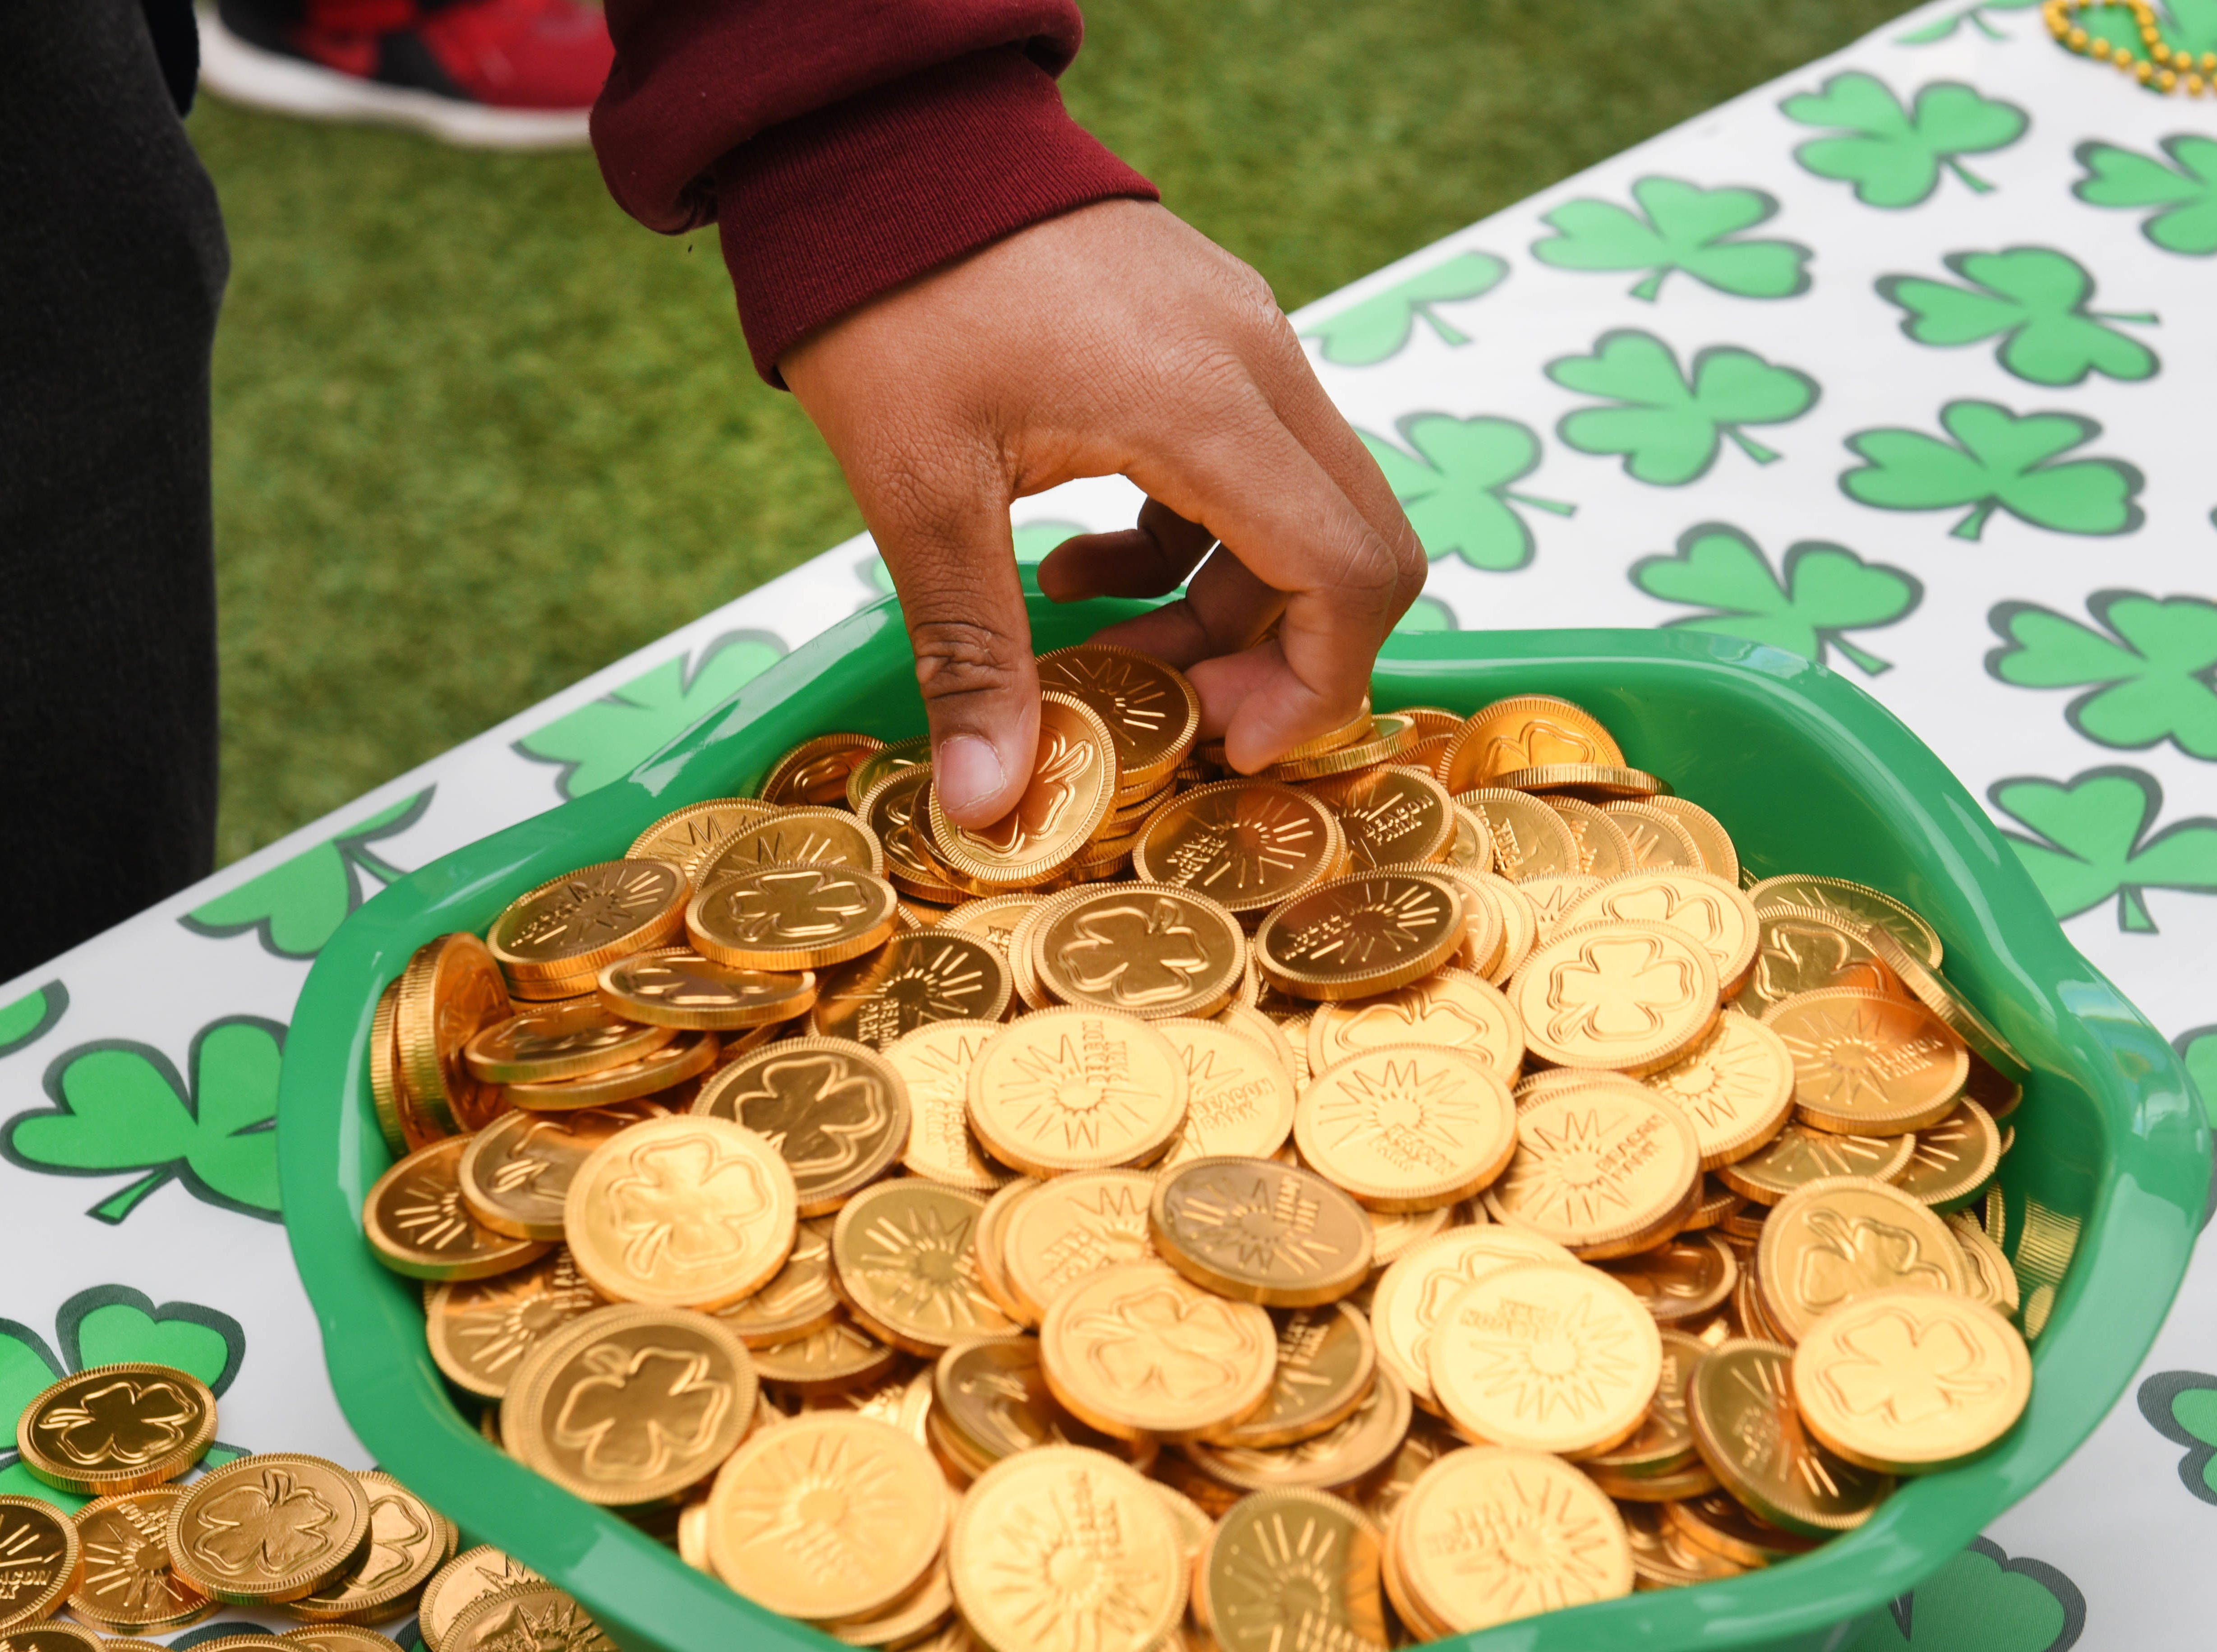 Chocolate gold coins are a favorite treat at the St. Patrick's Day Party at Beacon Park.